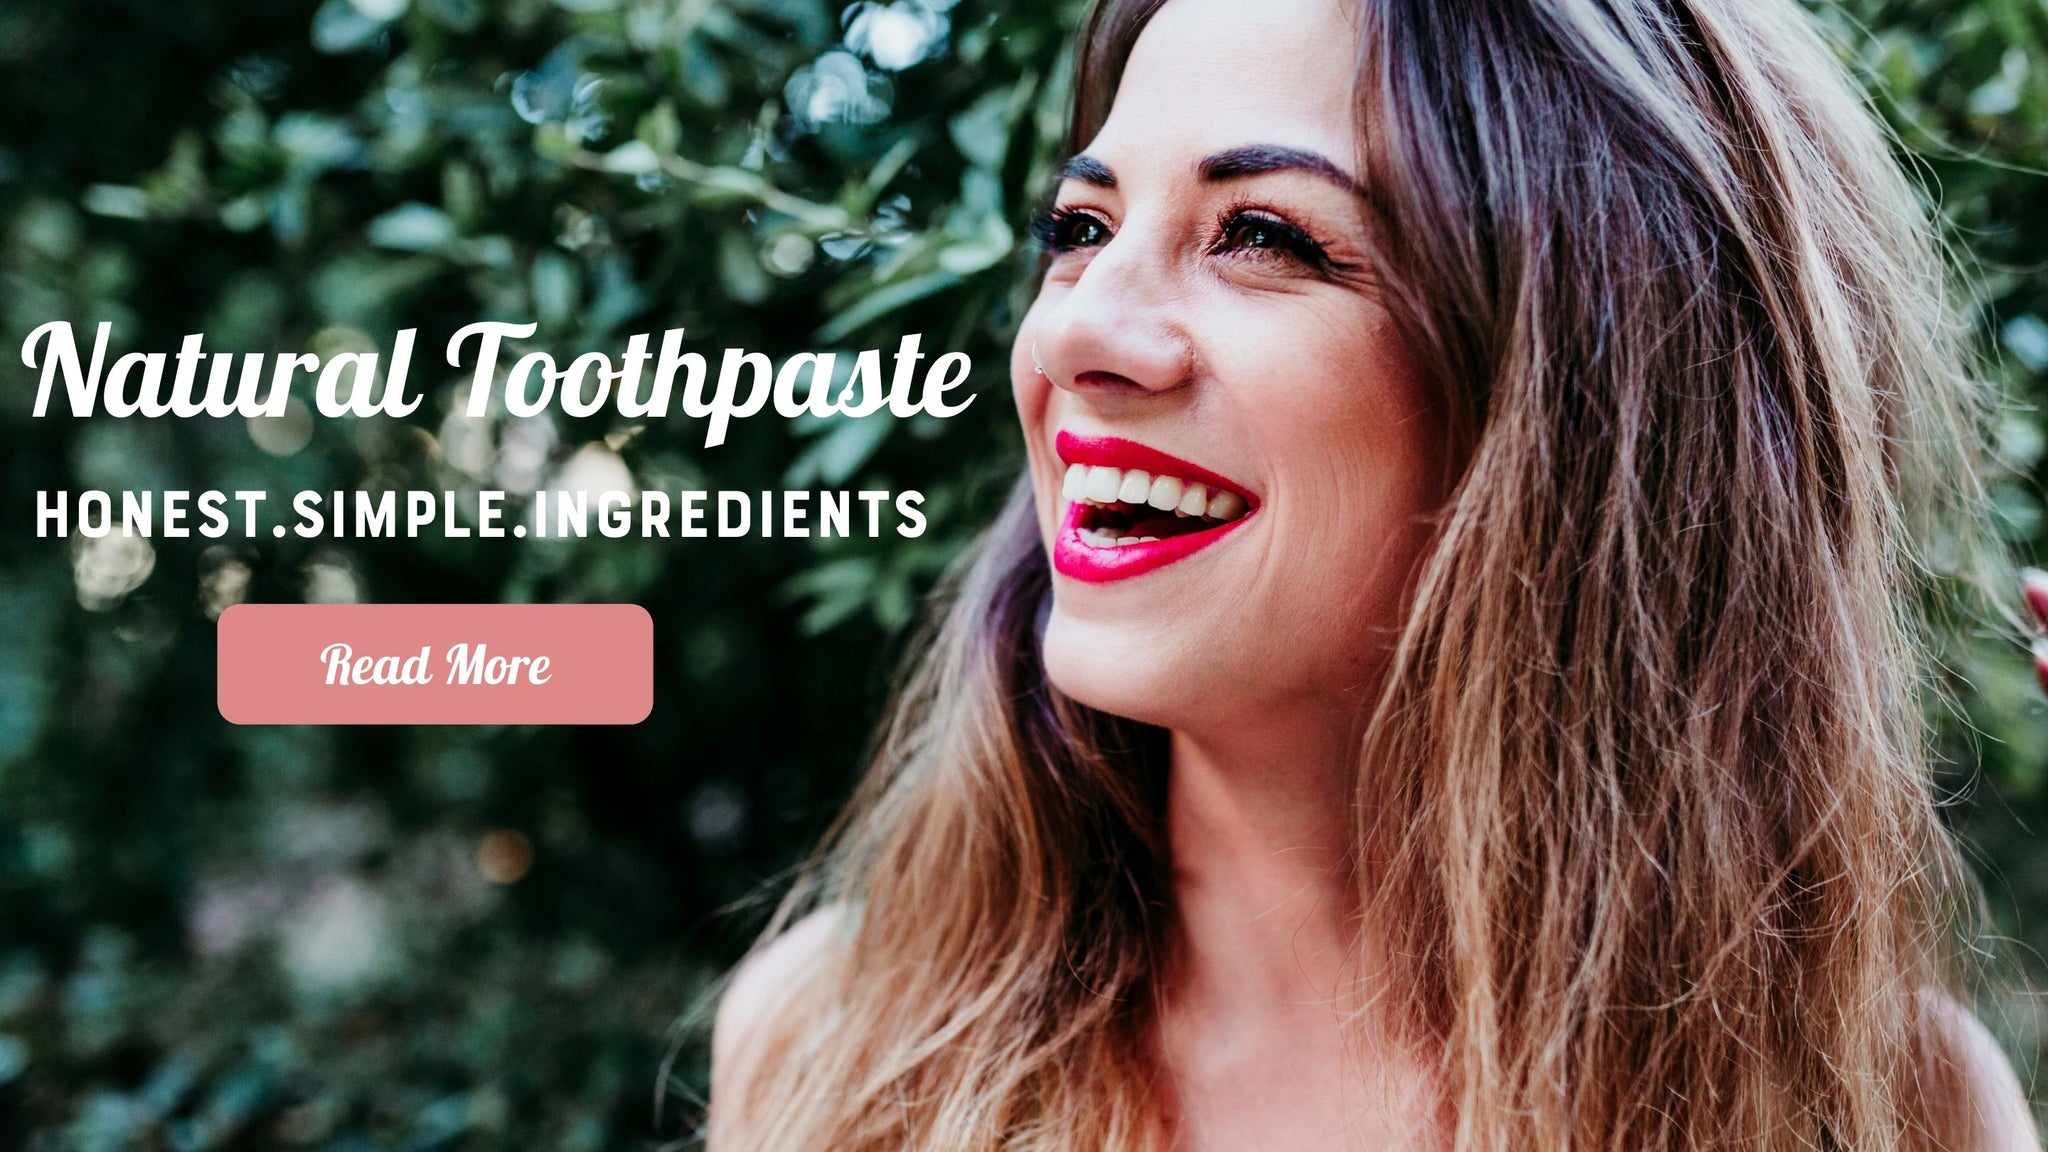 Girl smiling with natural toothpatse